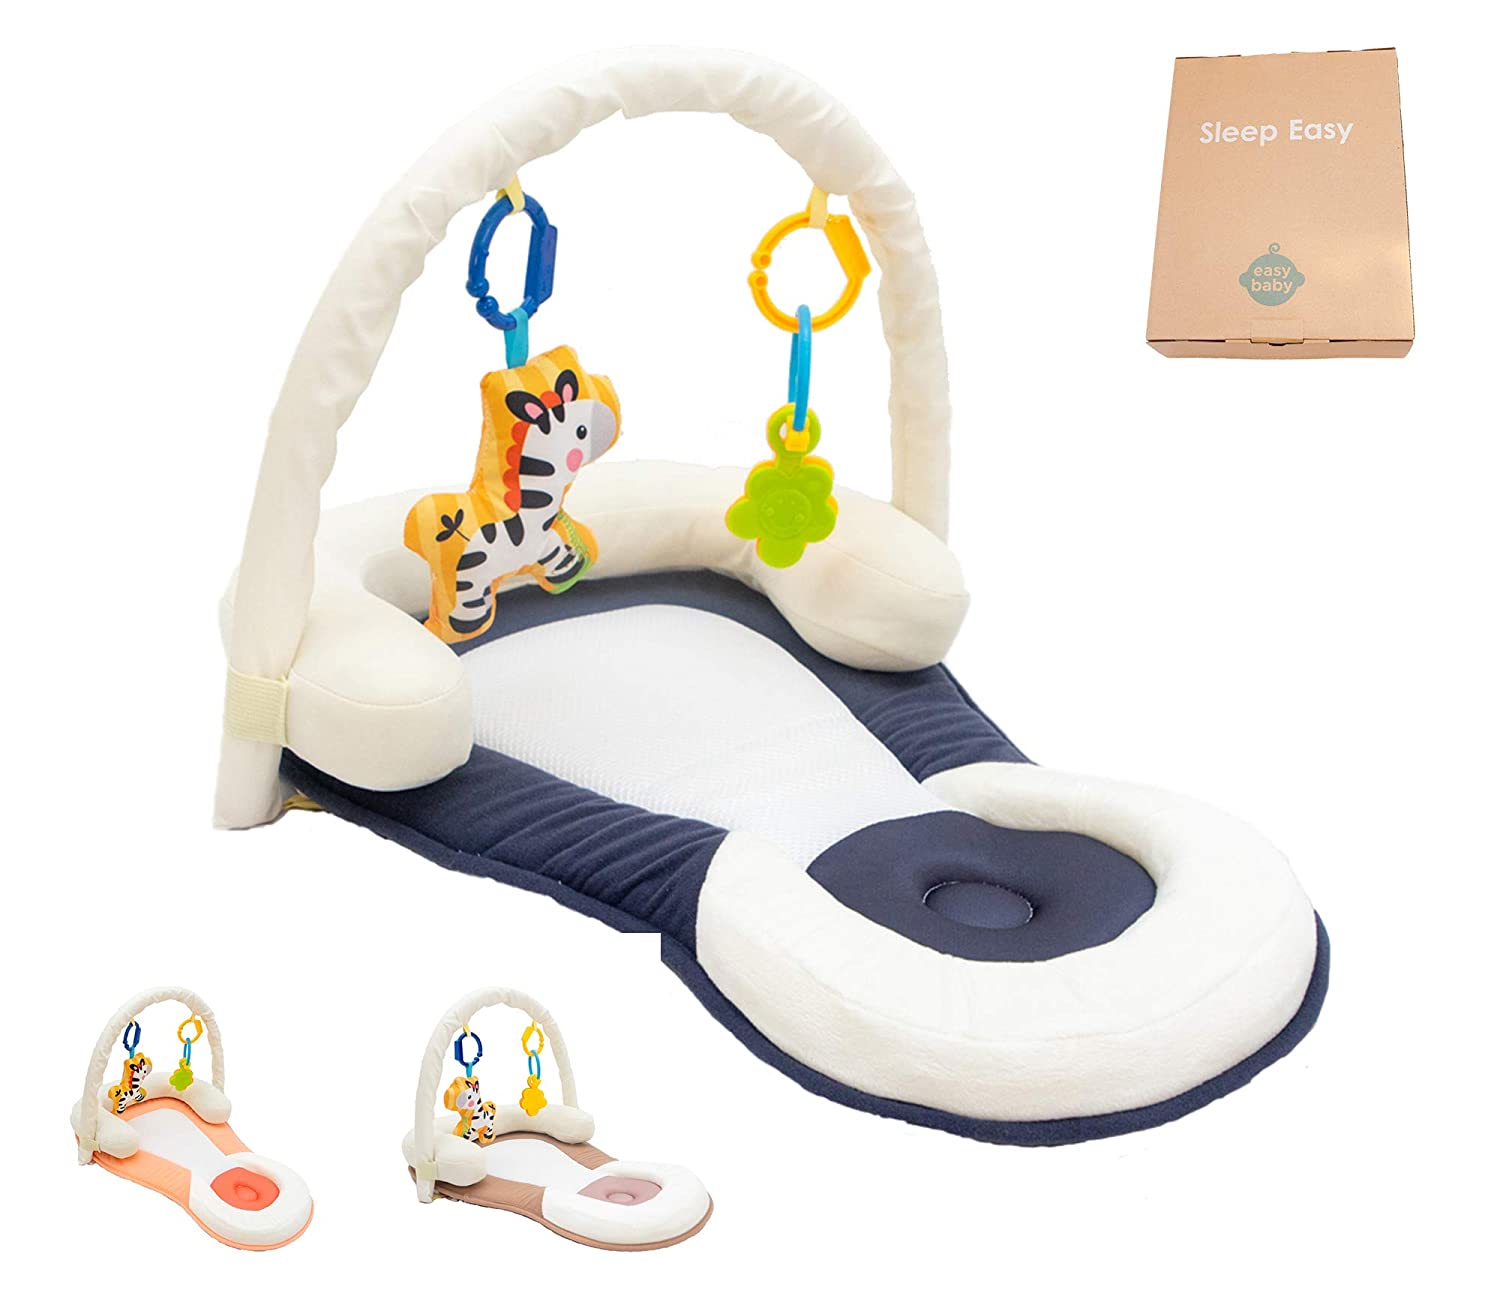 Easy Portable Baby Bed with Head Support- Non-Toxic, Foldable, Adjustable, Travel Bed Newborn Lounger (Blue)